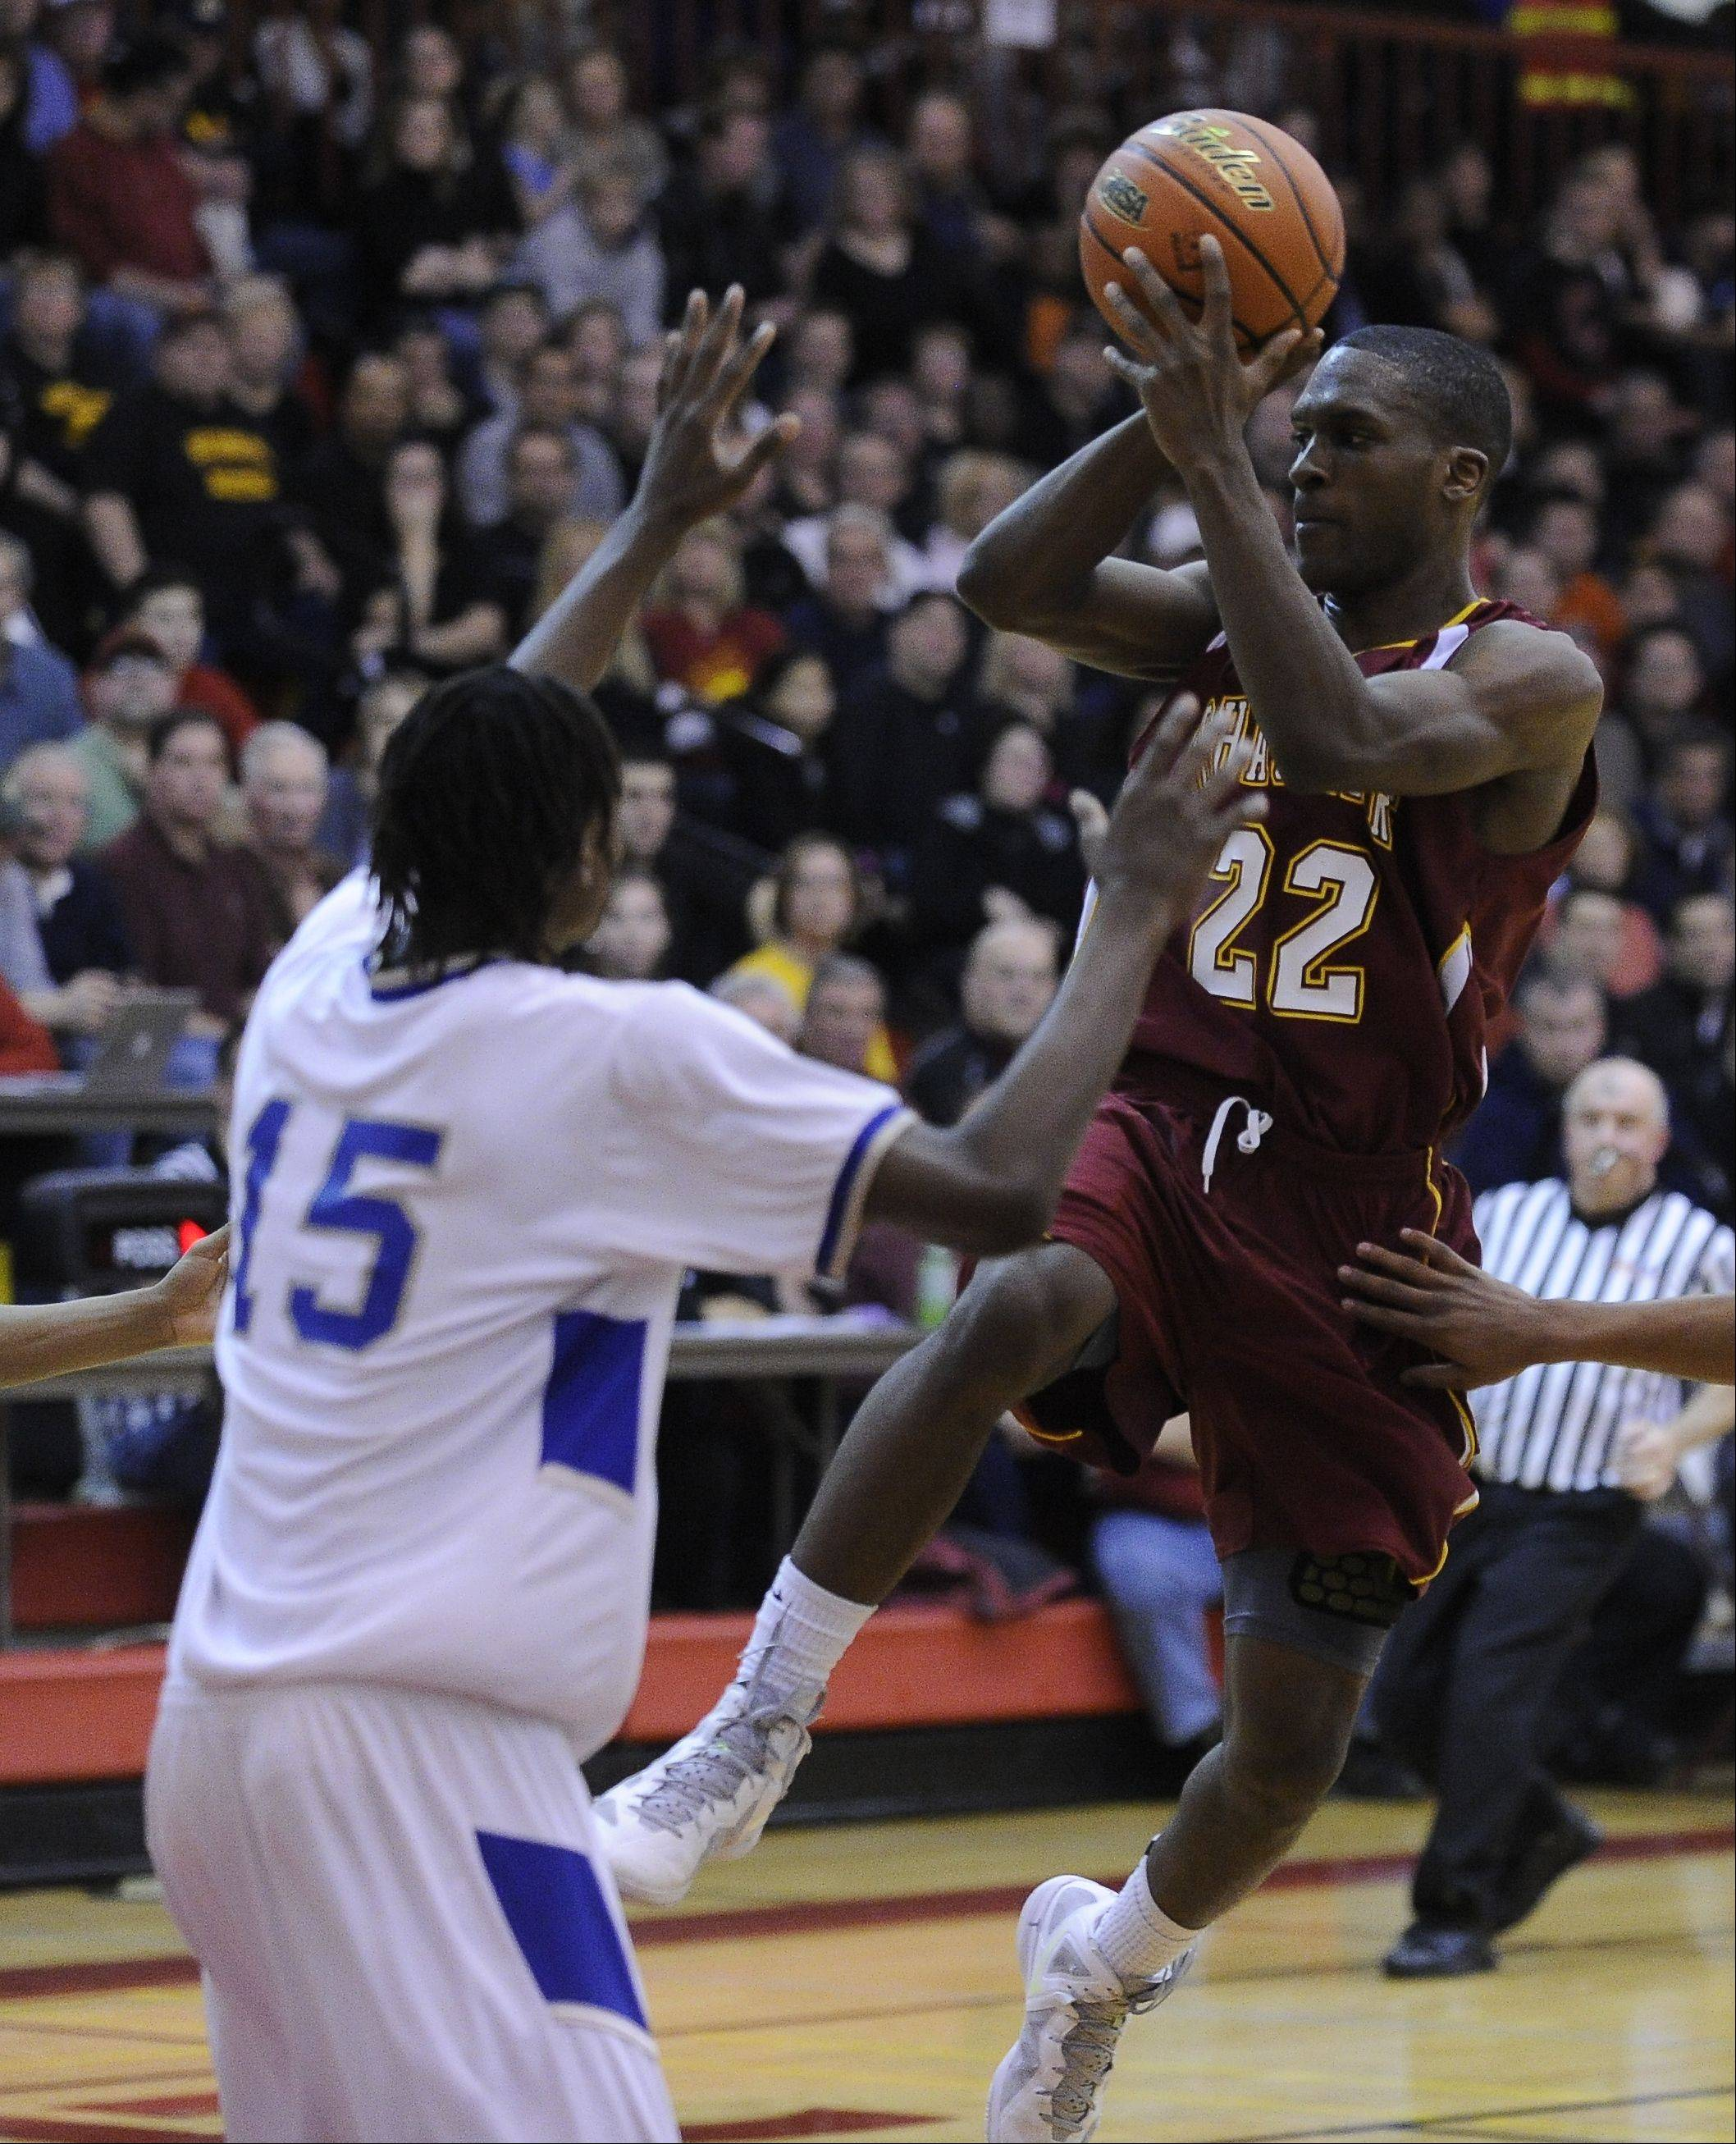 Images from the Schaumburg vs. Proviso East sectional final boys basketball game in Schaumburg on Friday, March 9th.